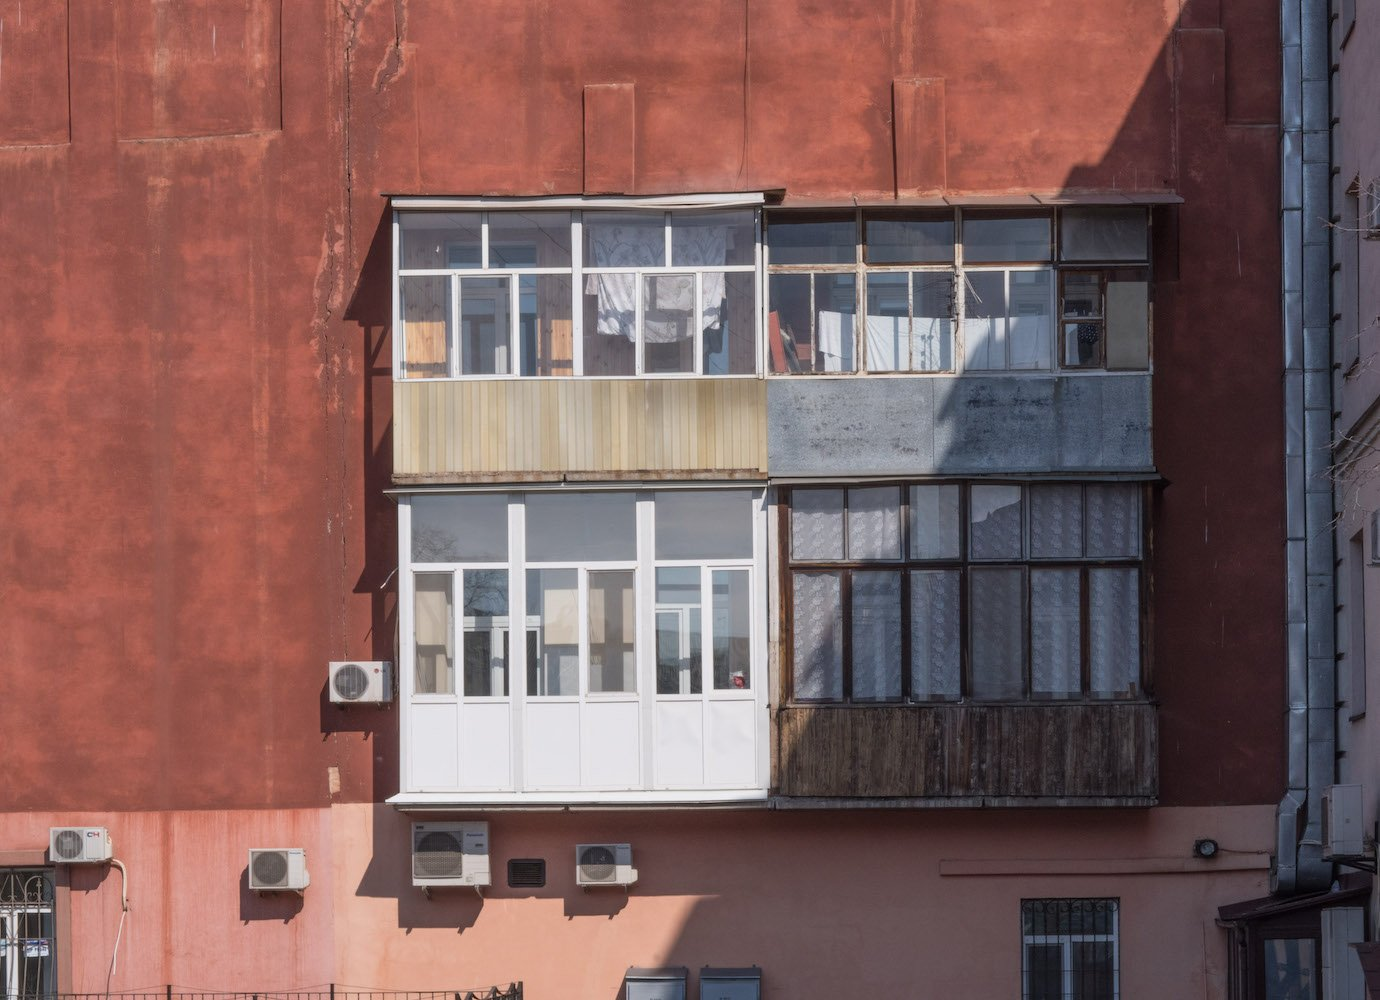 Castle in the clouds: celebrating the eclectic, DIY designs of Ukraine's status symbol balconies